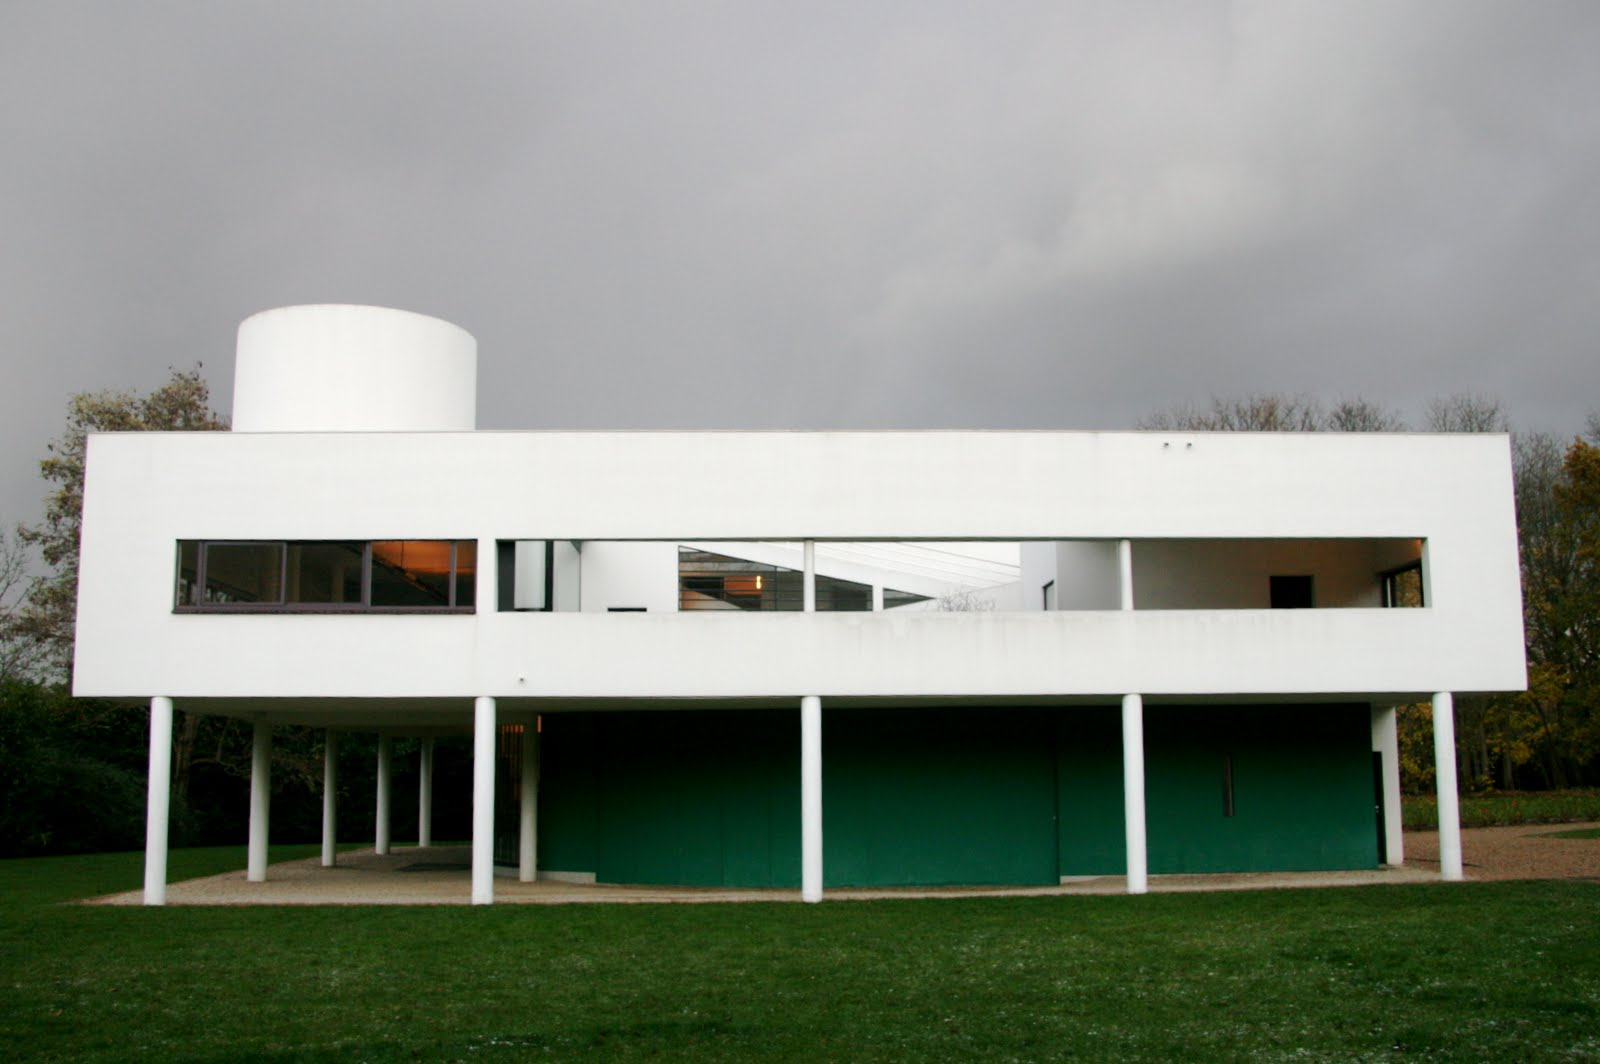 villa savoye This famous house was built in 1929 the narrow columns replace the need for load-bearing walls and allow for a more open floor plan.